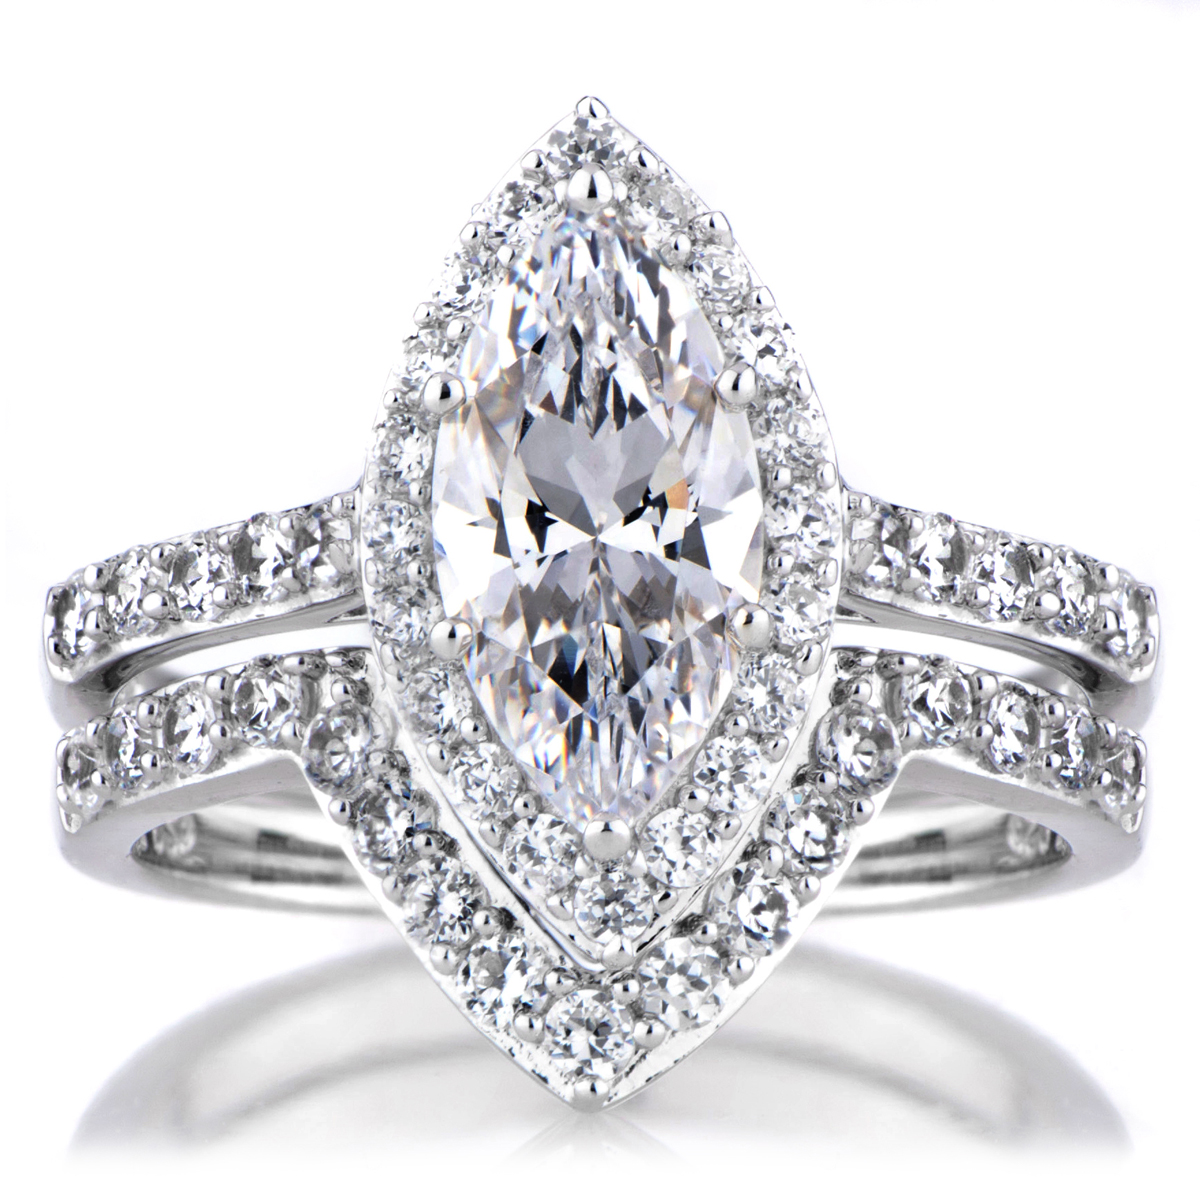 padgett s marquise cut cz engagement ring and guard set